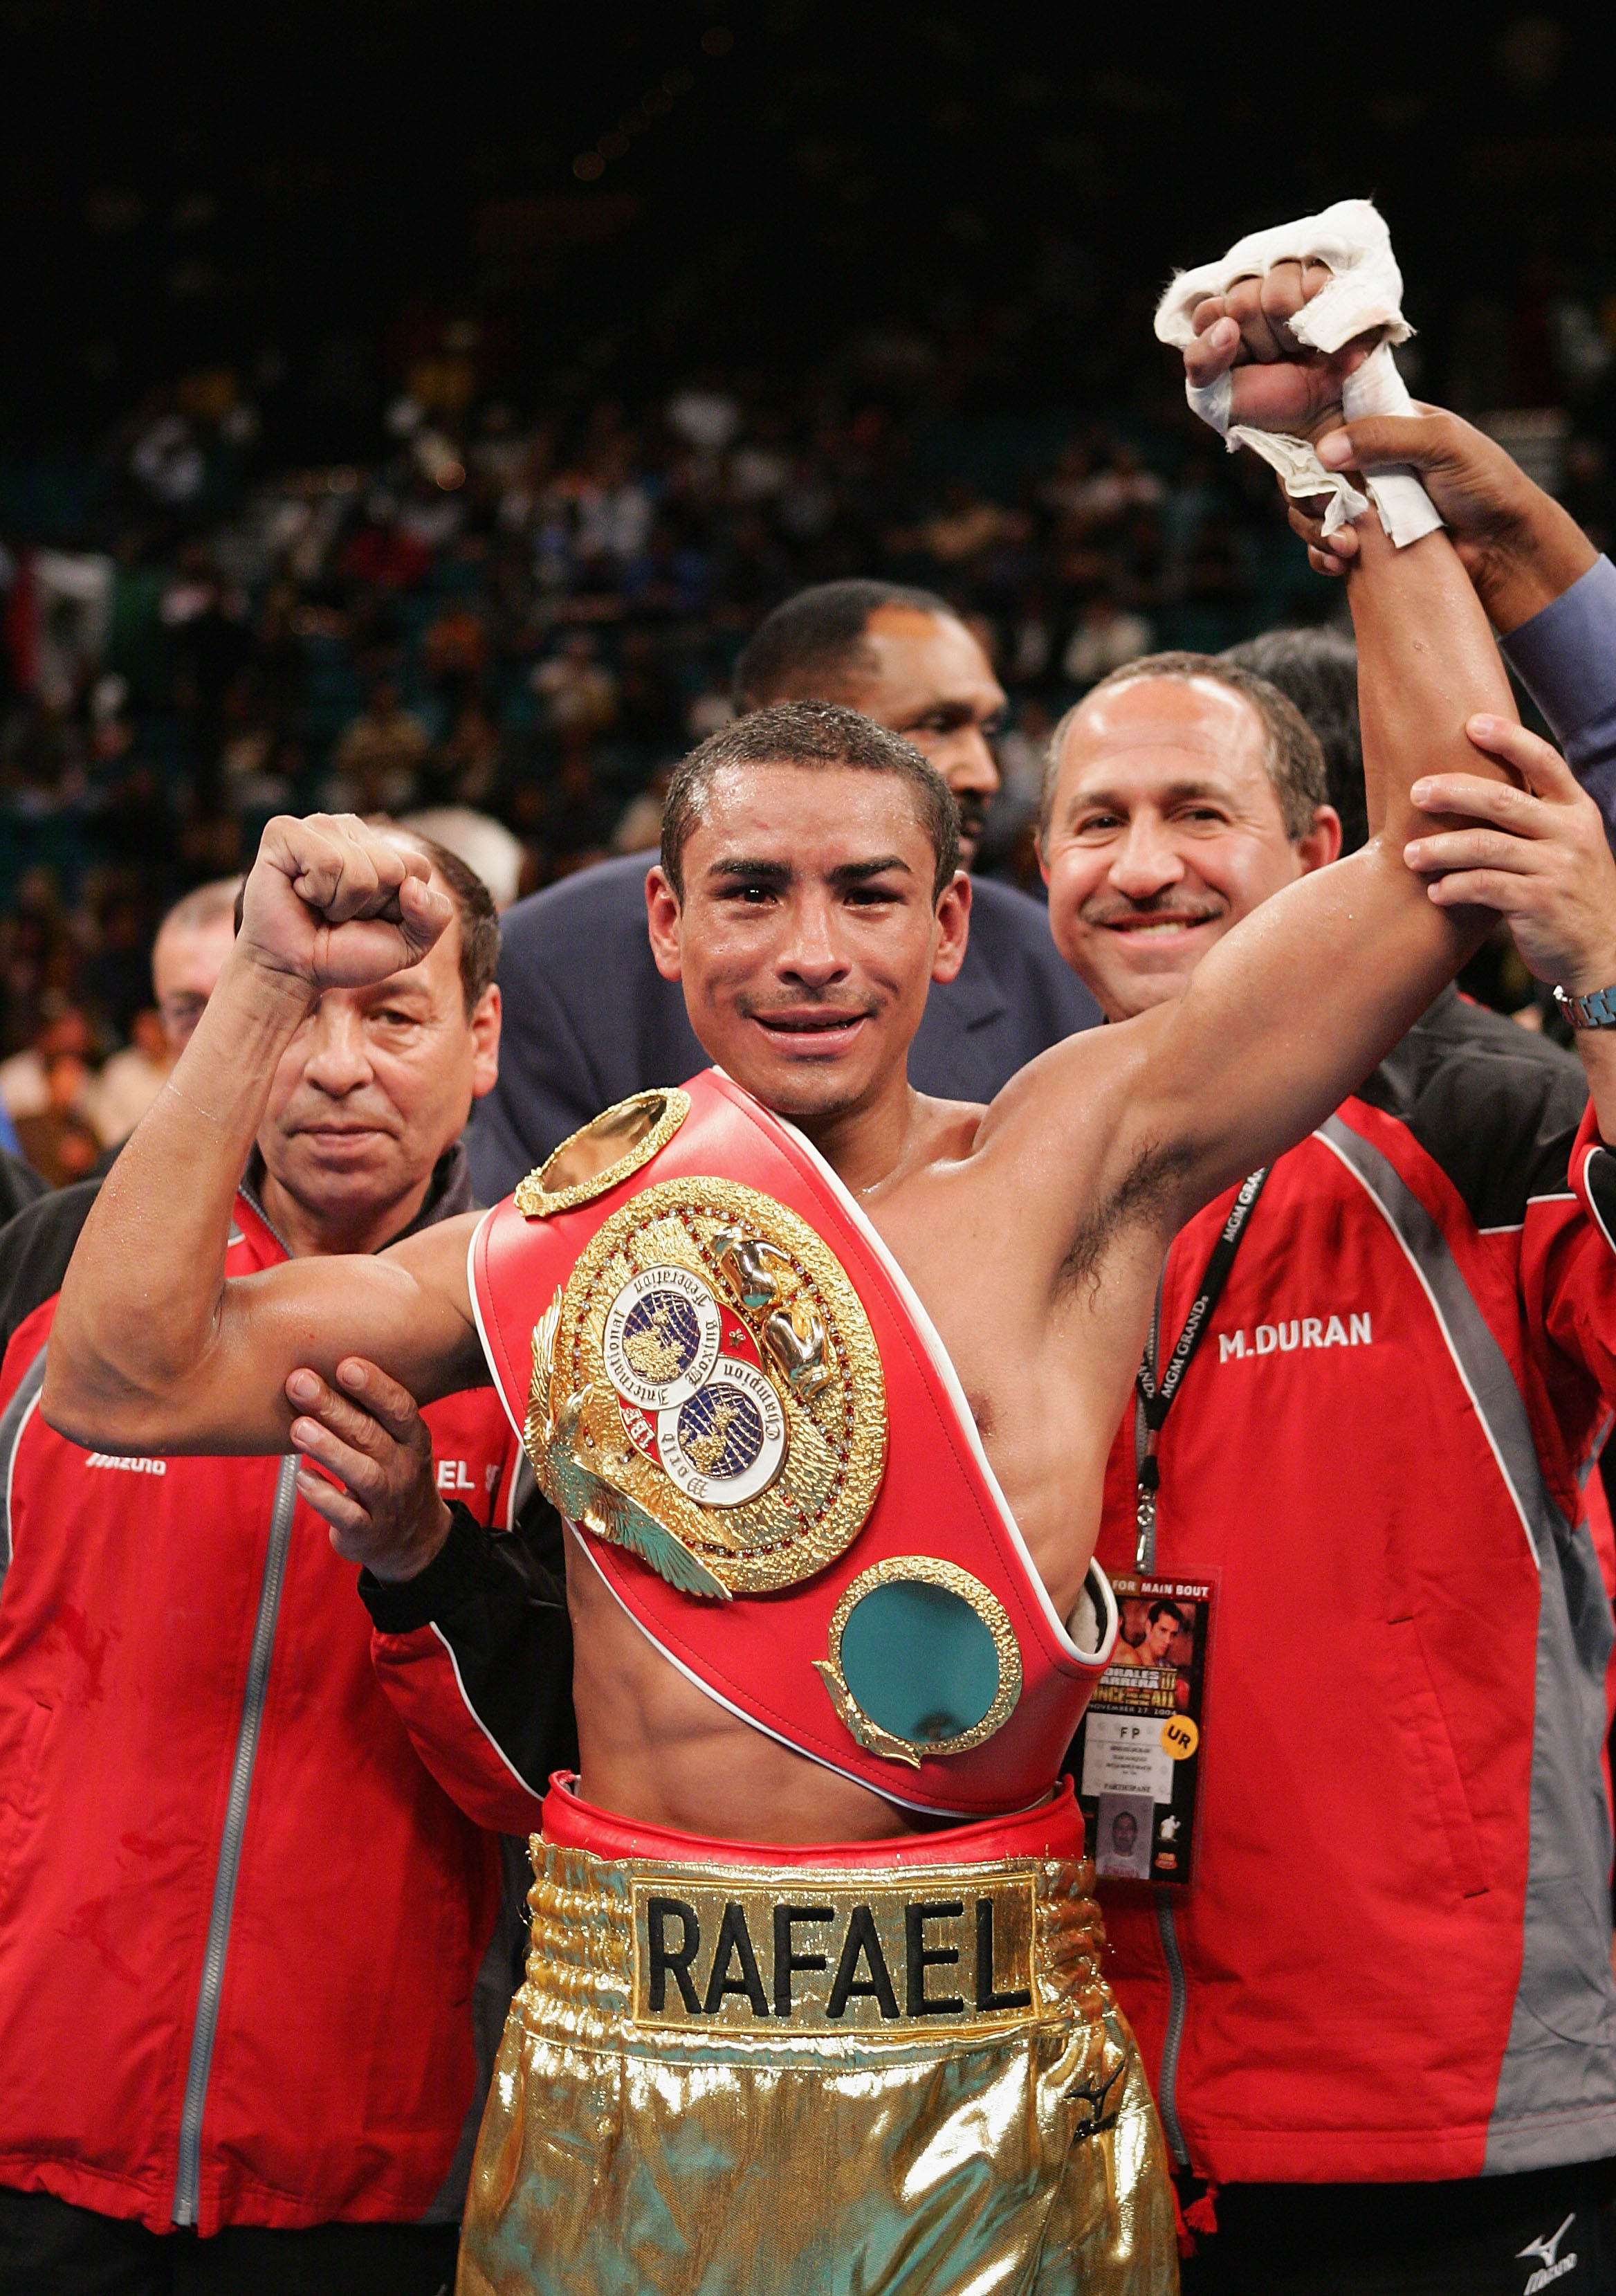 LAS VEGAS - NOVEMBER 27:  Rafael Marquez celebrates after defeating Mauricio Pastrana for the IBF World Bantamweight Championship at the MGM Grand Garden Arena on November 27, 2004 in Las Vegas, Nevada. Marquez defeated Pastrana by TKO after the 8th round